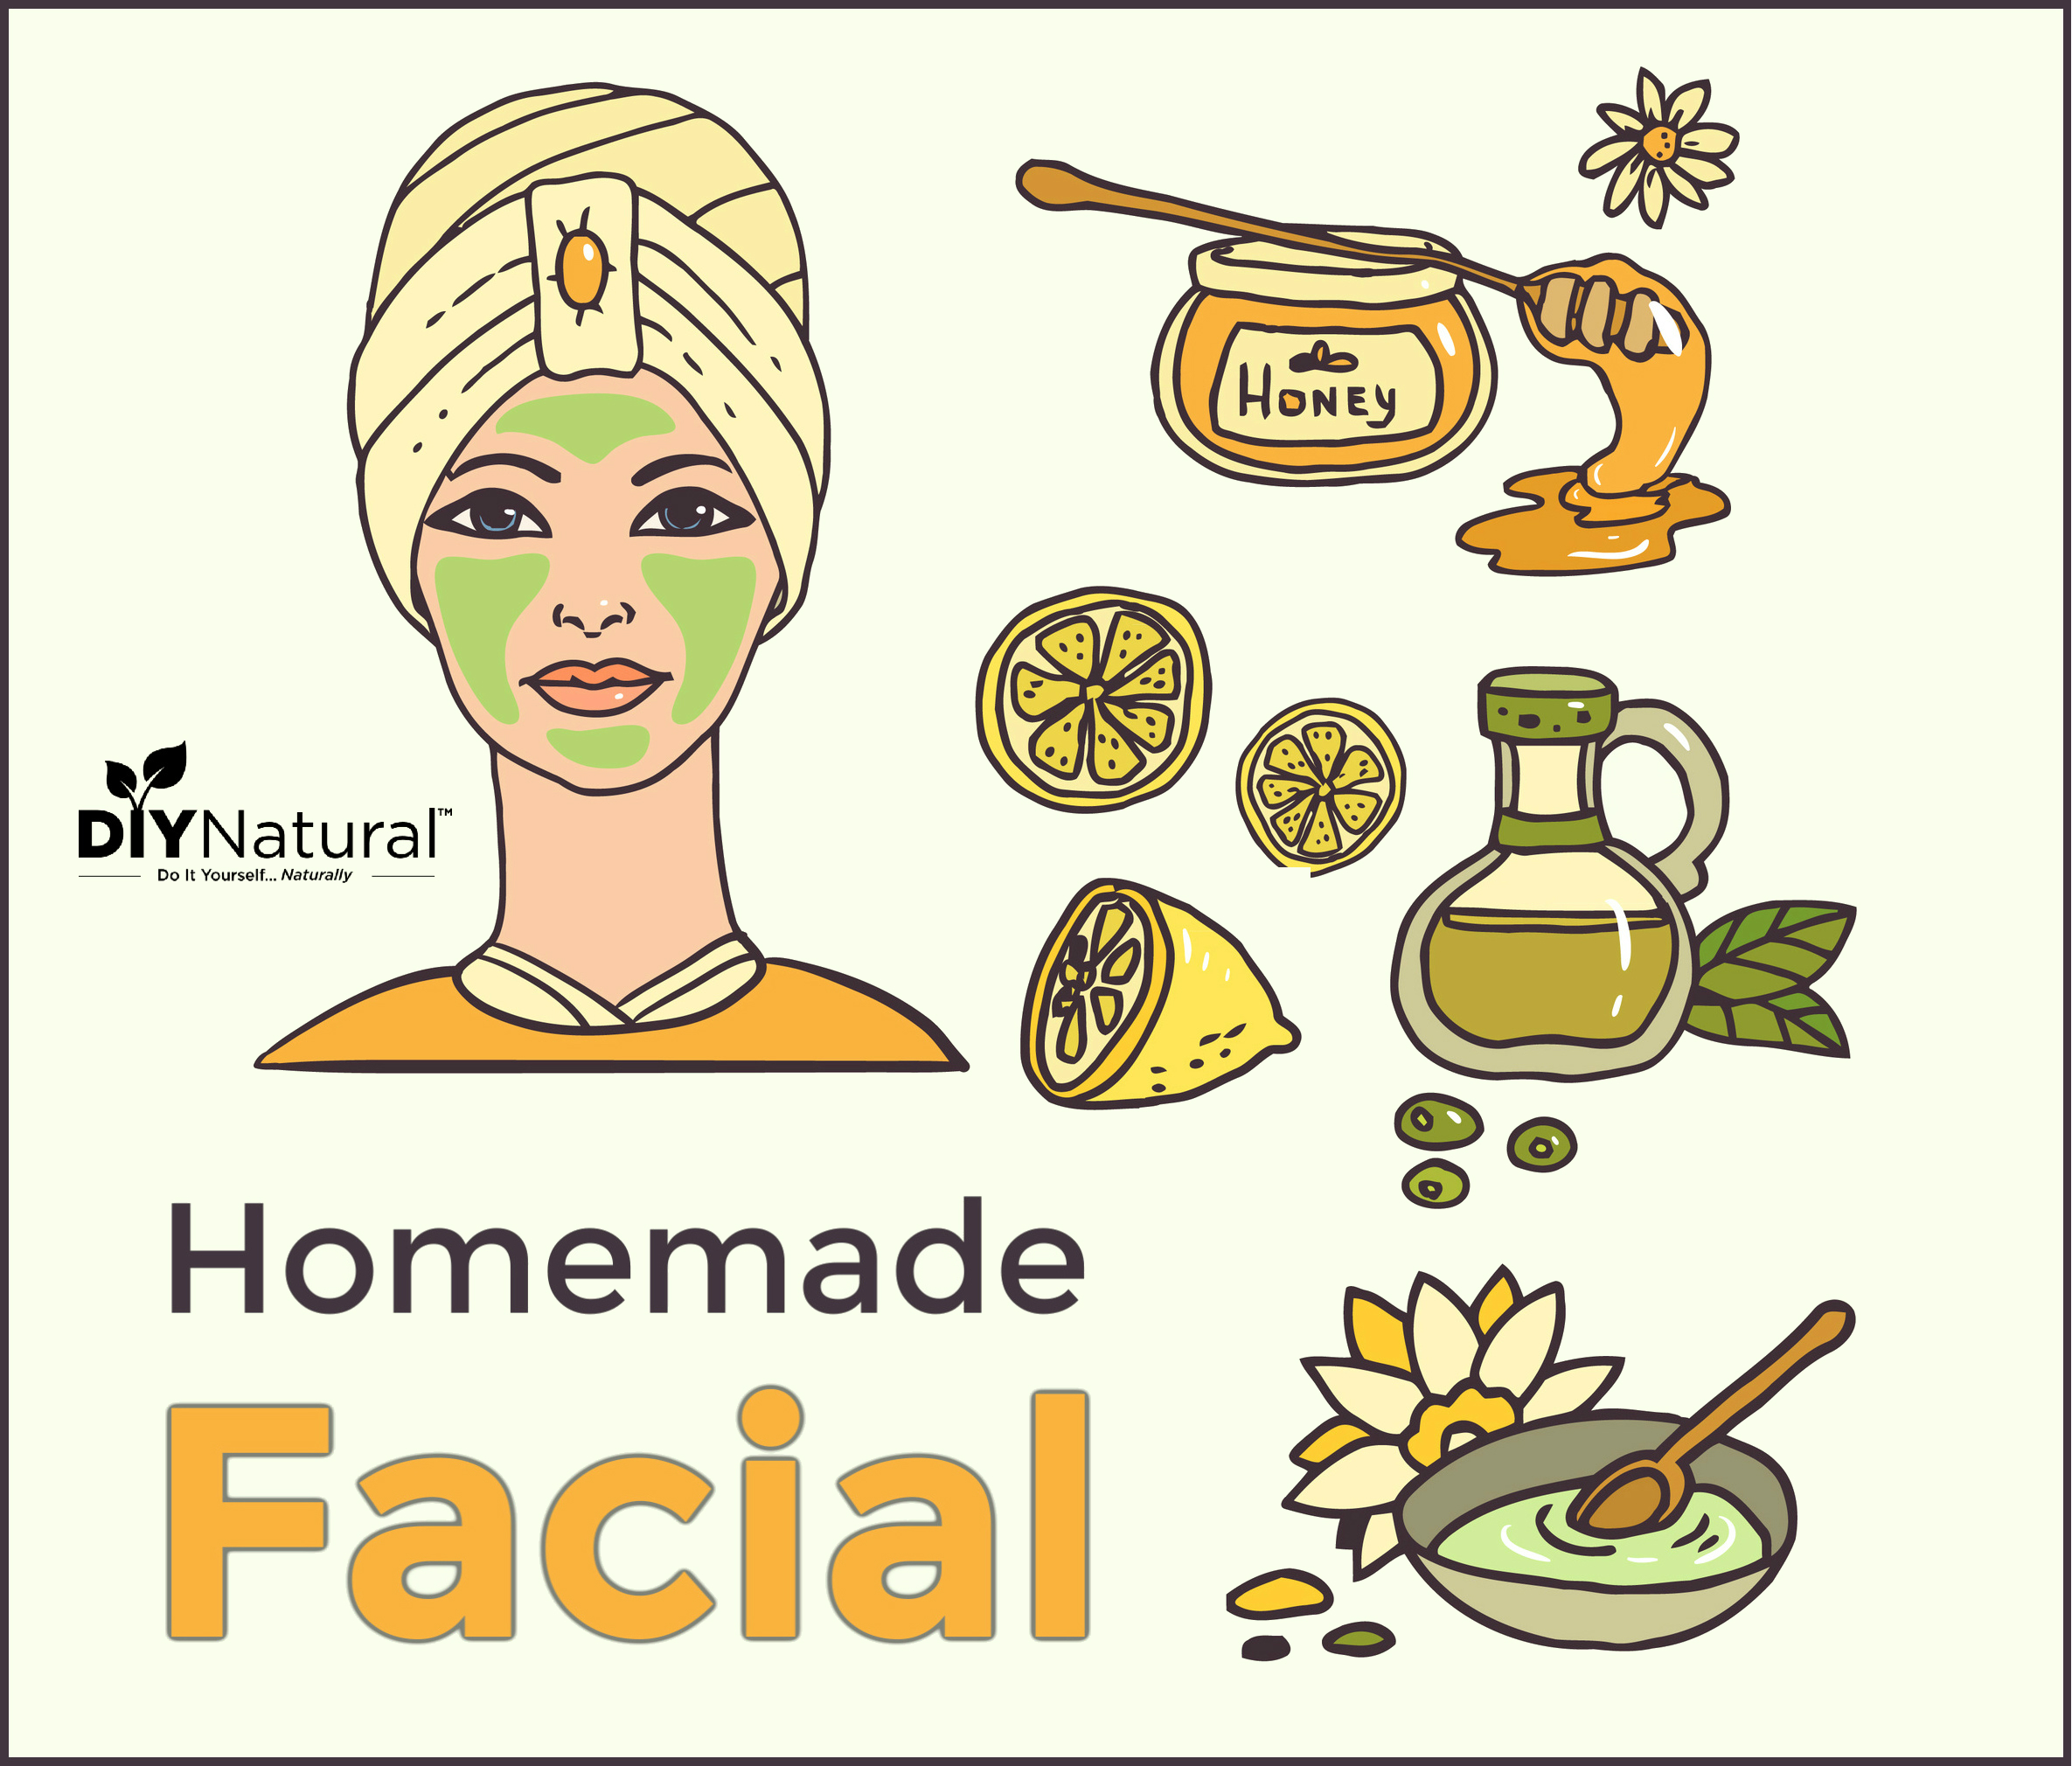 Homemade Facial: A Simple Natural